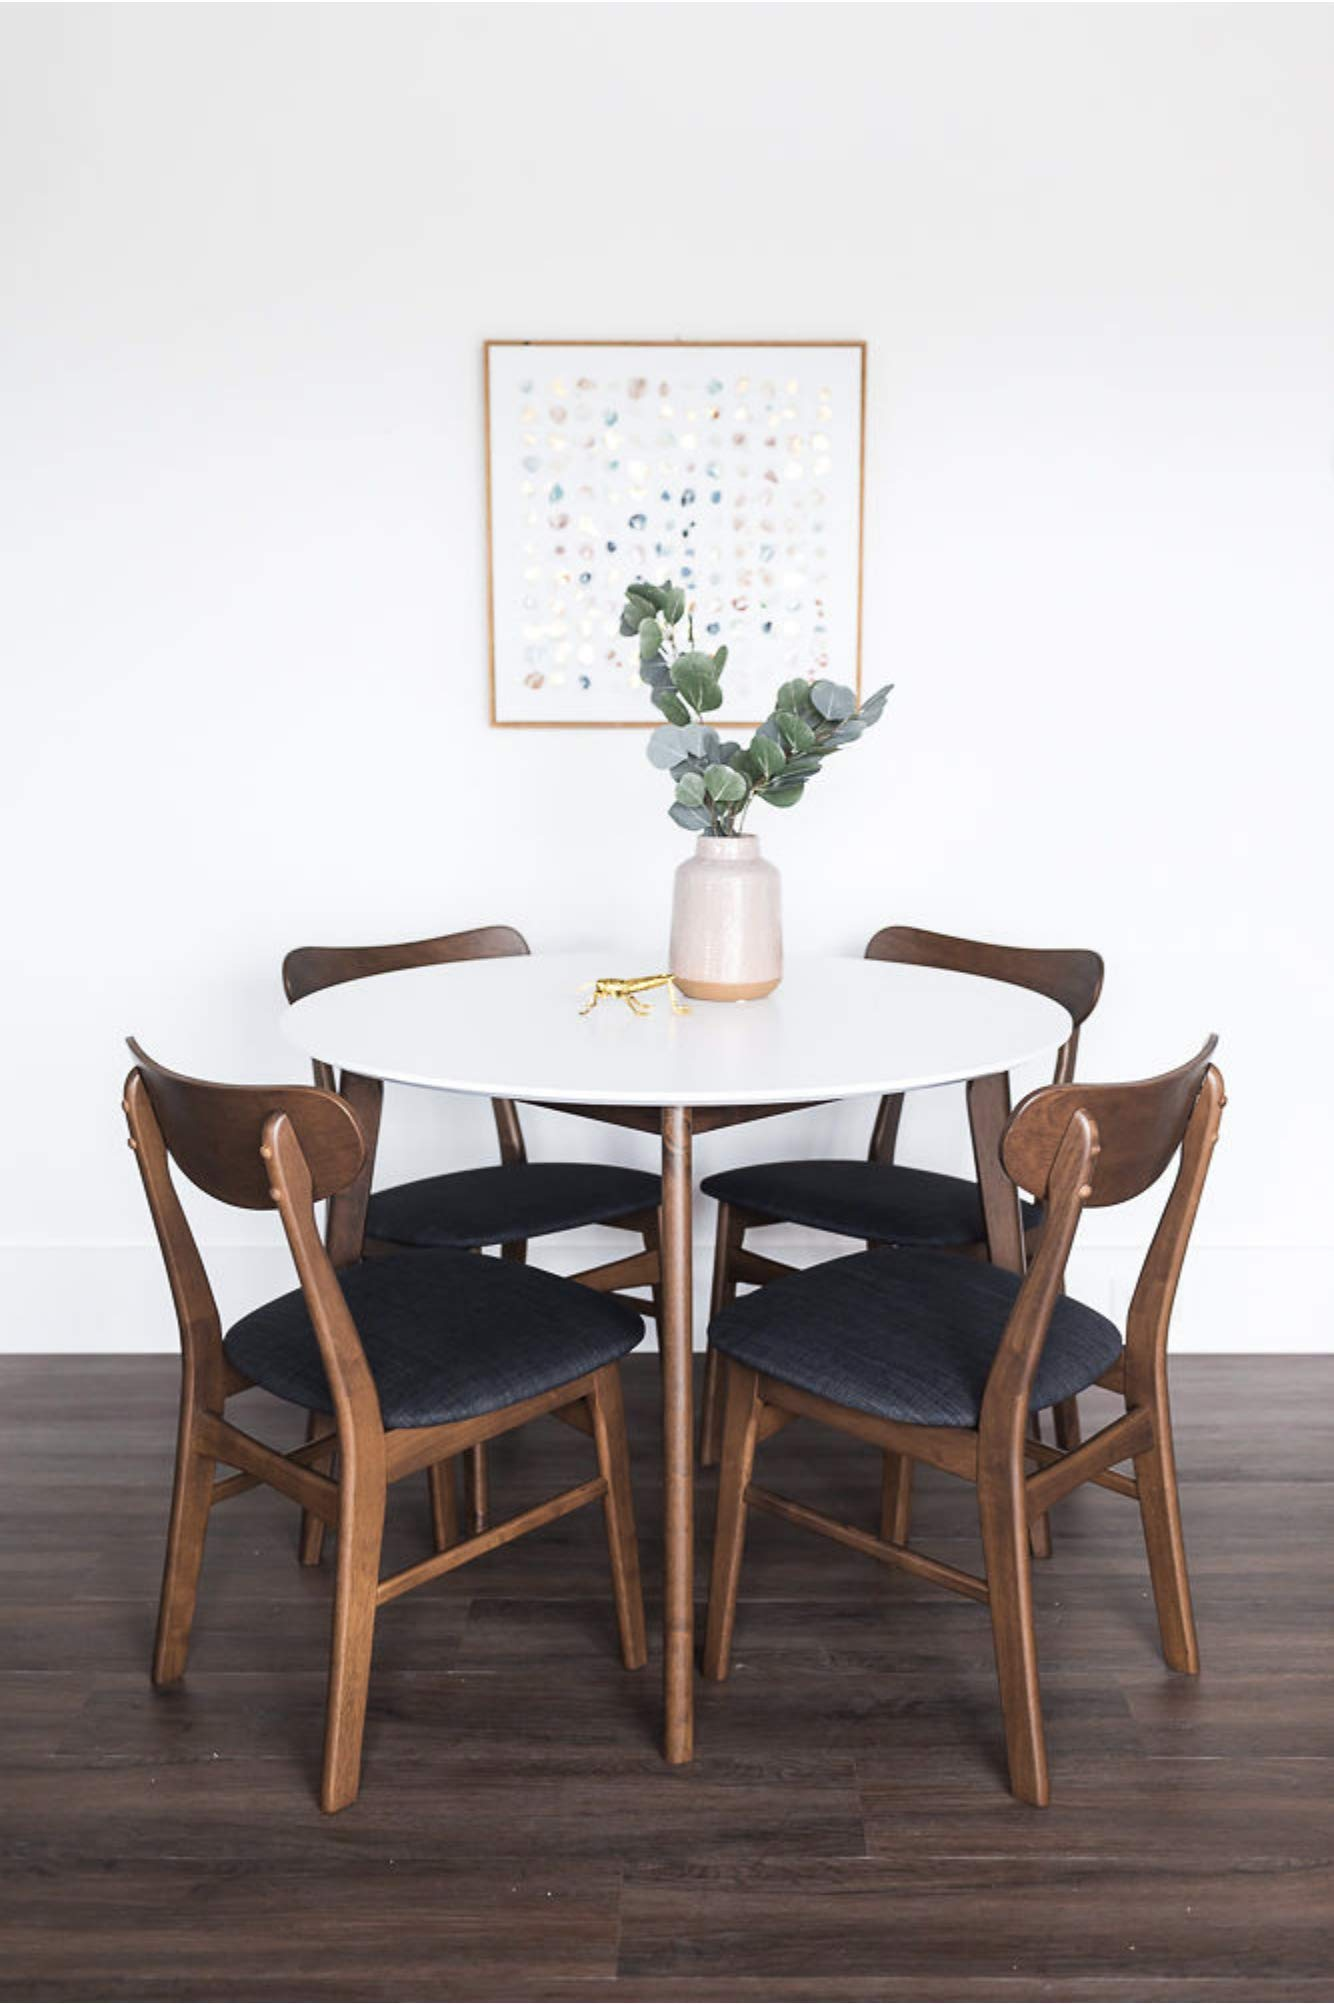 Edloe Finch Dakota Mid-Century Modern 5 Piece Round Dining Table Set for 4, White Top by Edloe Finch (Image #2)